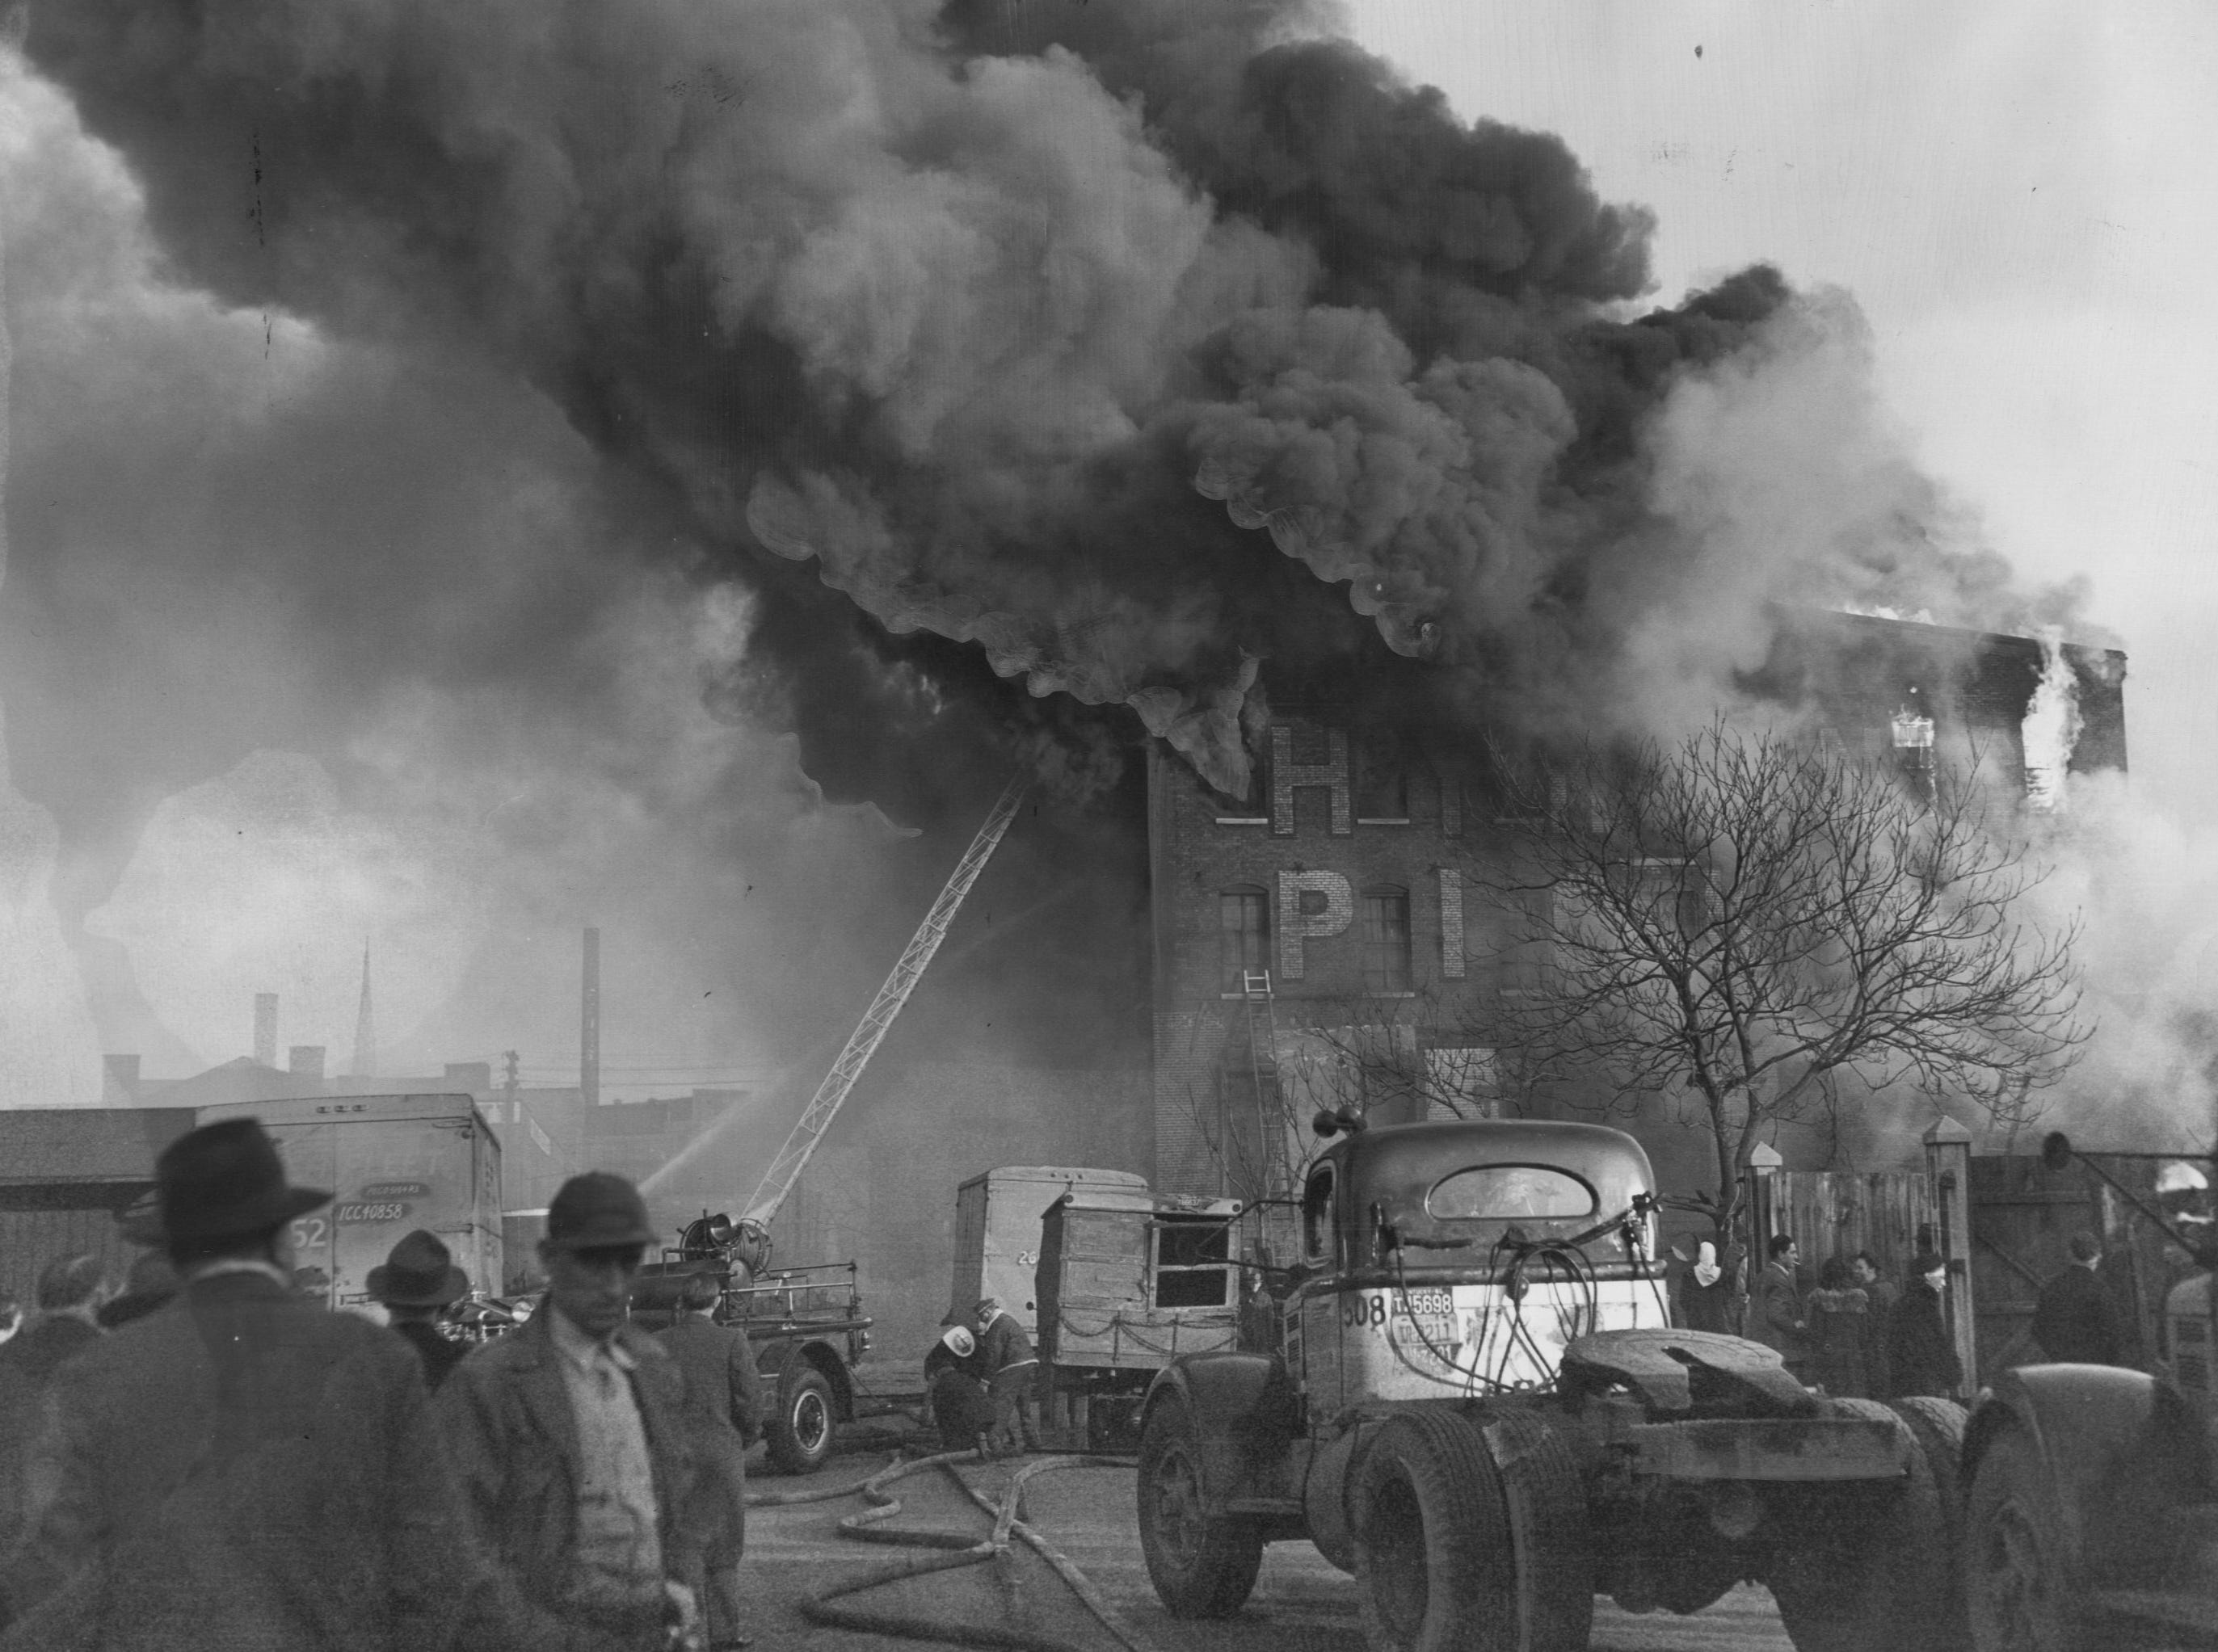 Whipped by a strong wind, flames spurt from windows of the old Hyman Pickle Company building on Pearl between Floyd and Brook. 